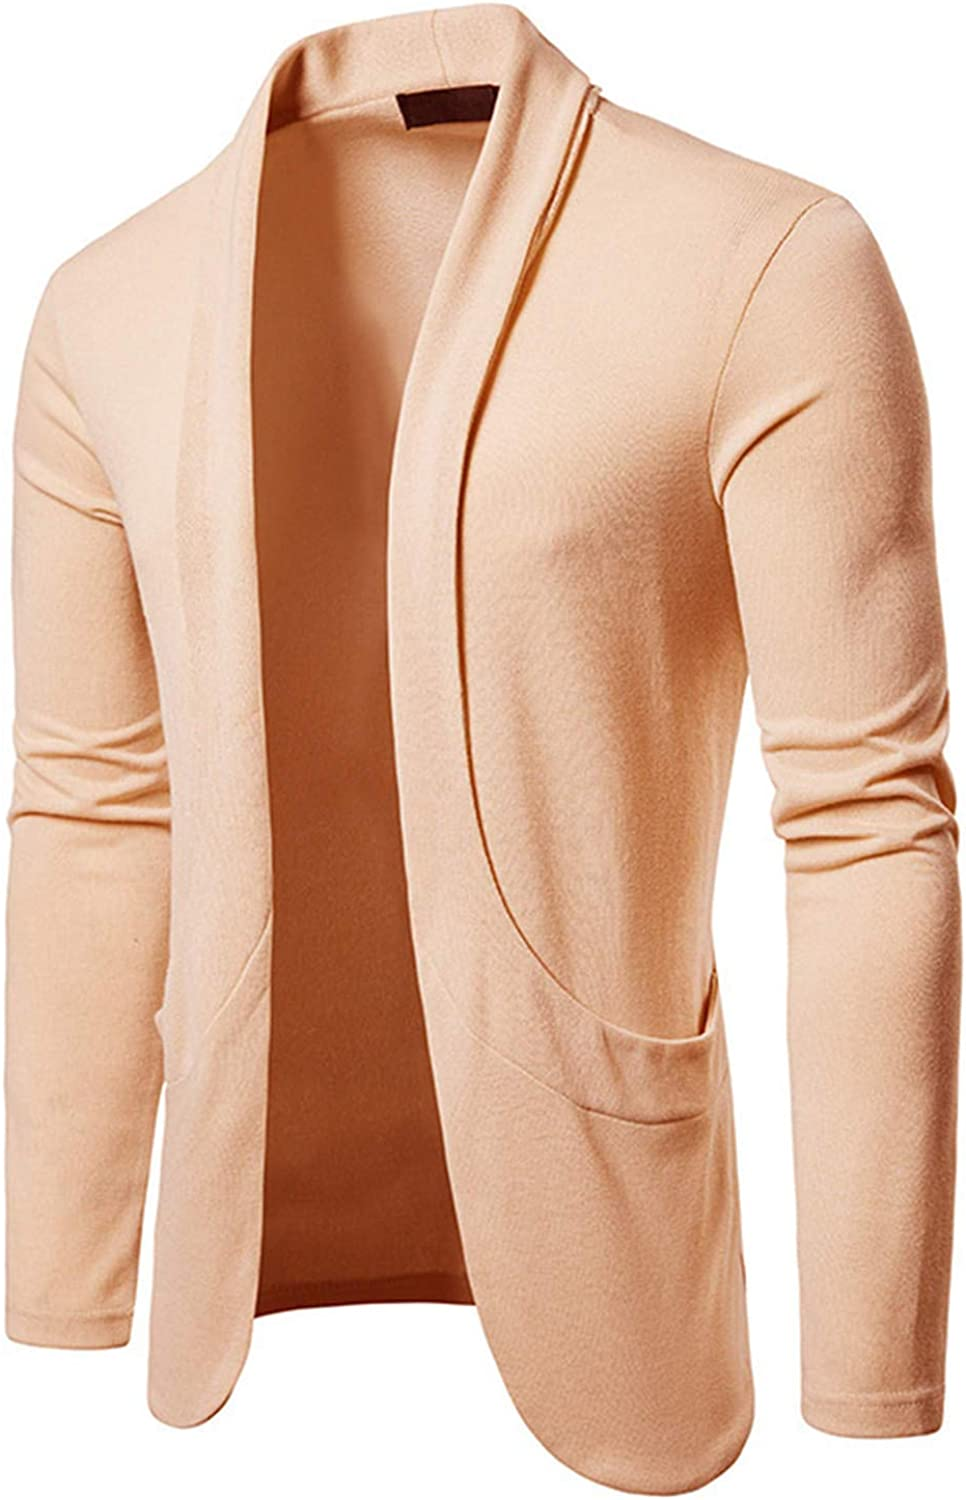 Soluo Mens Open Front Shawl Collar Cardigan Sweater Casual Long Sleeve with Ribbing Edge Cardigan Overcoat (Beige,XX-Large)